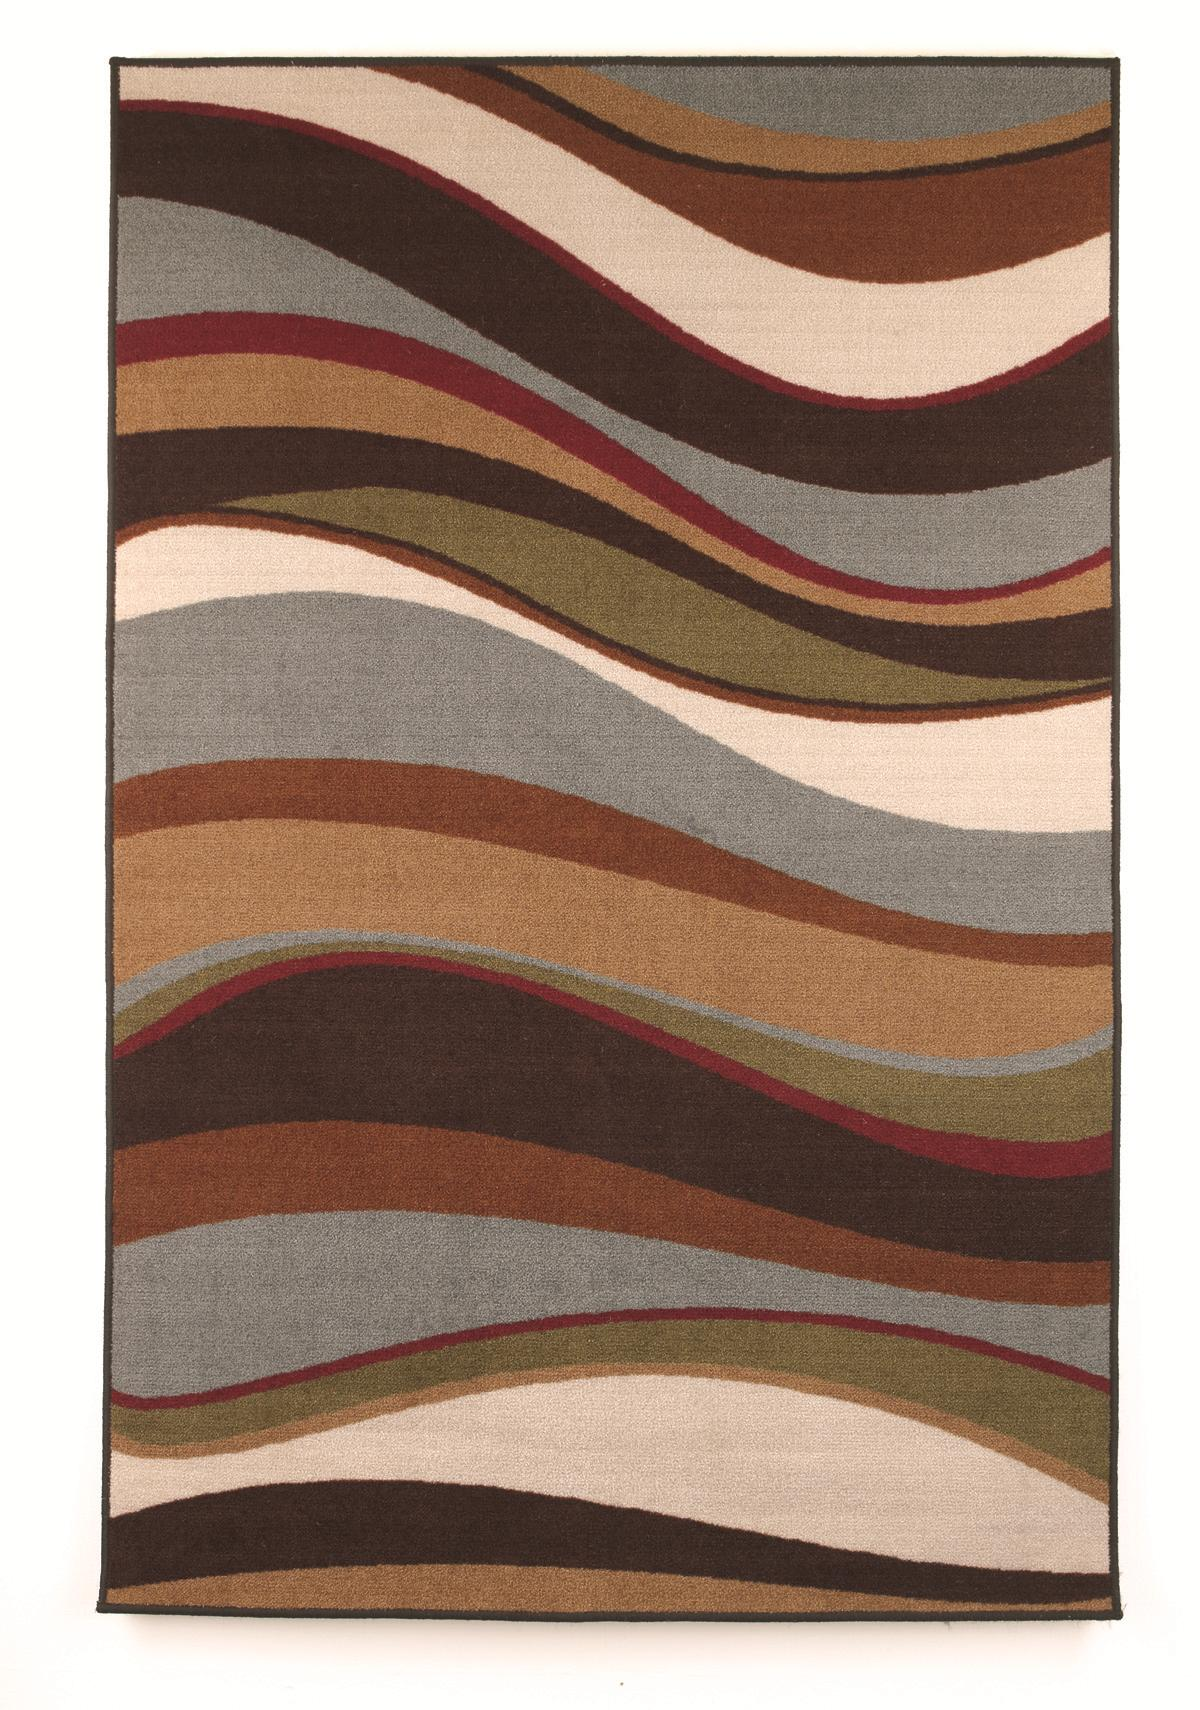 Signature Design by Ashley Contemporary Area Rugs Tidal - Multi Small Rug - Item Number: R333002